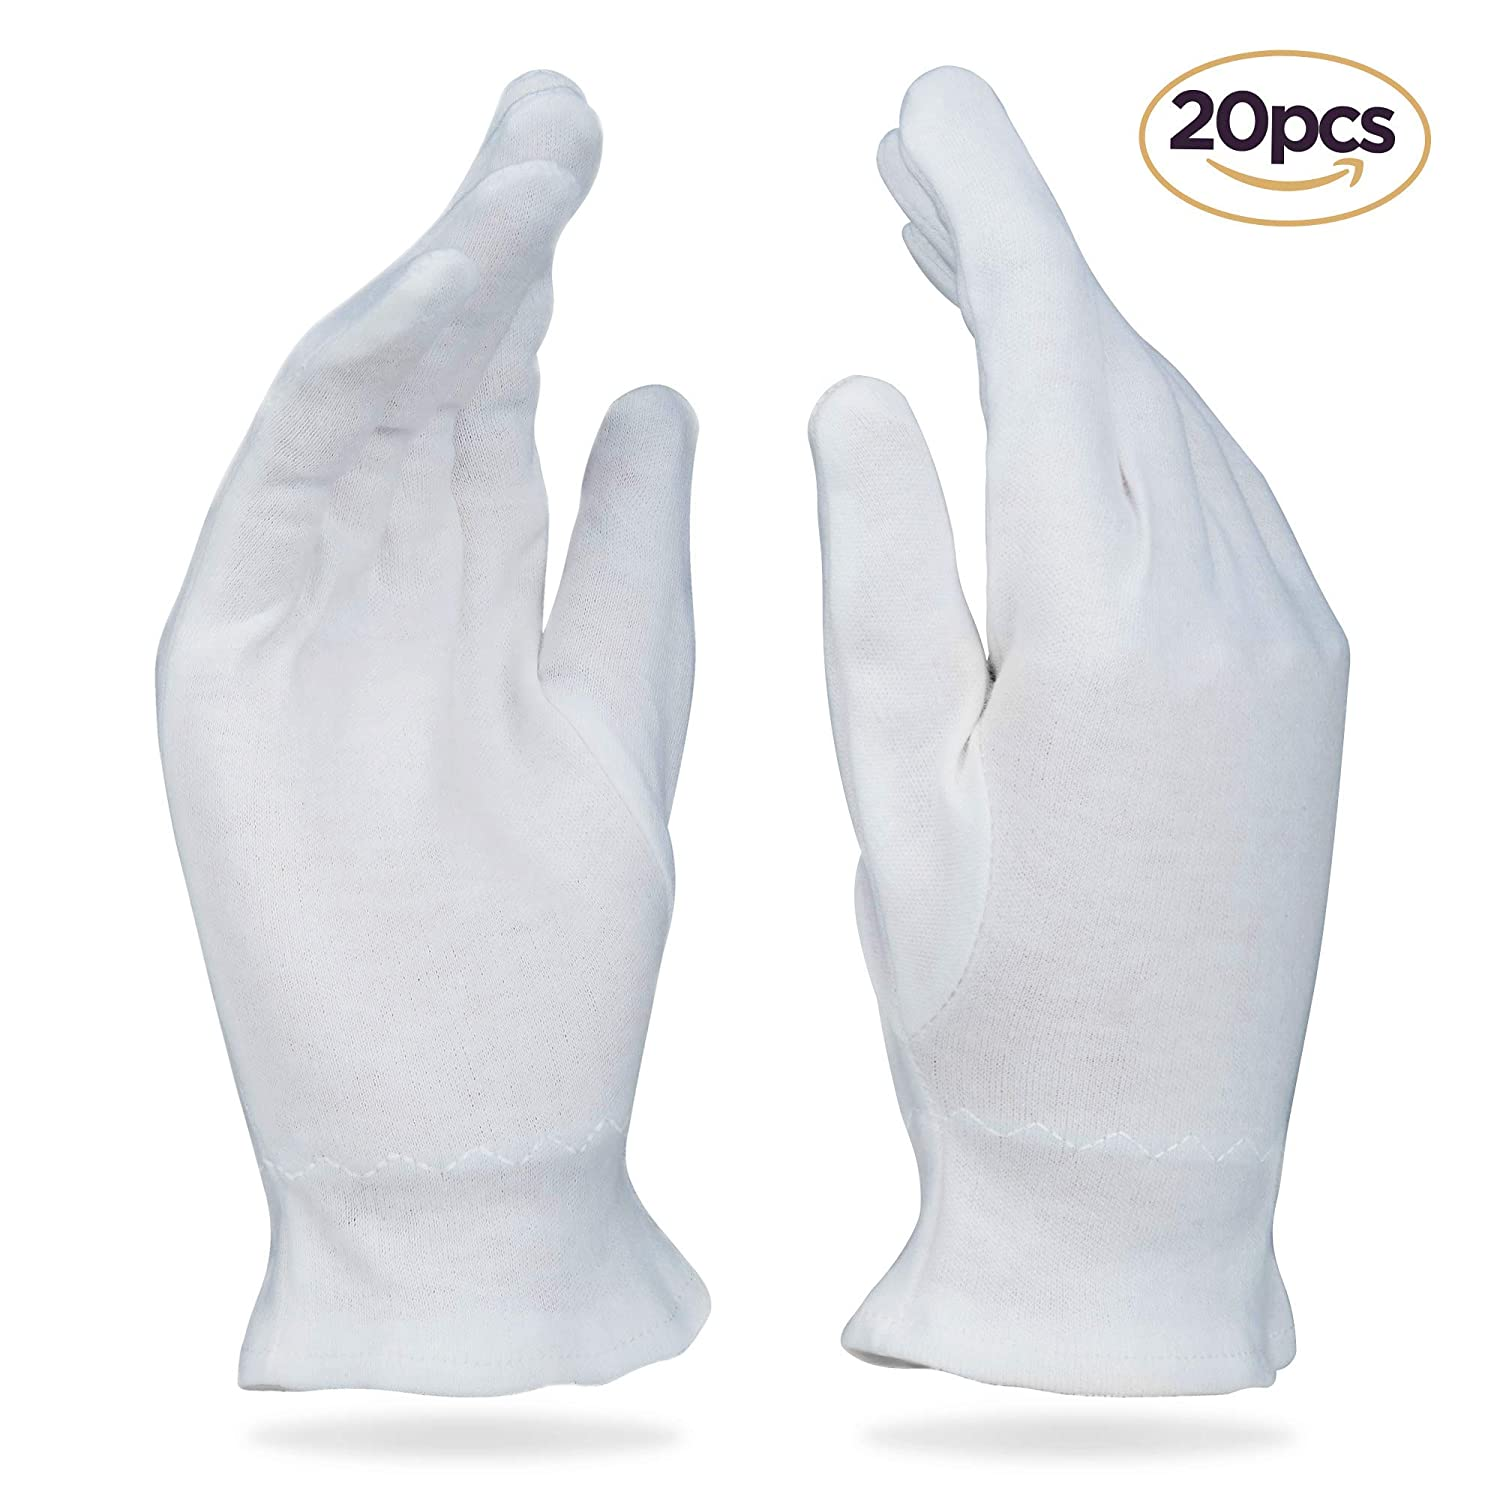 20 Large White Cotton Gloves For Dry & Sensitive Skin or Eczema - Thick Reusable Hand Protection With Wrist Band Seals In Moisturizer Care Wear Inc